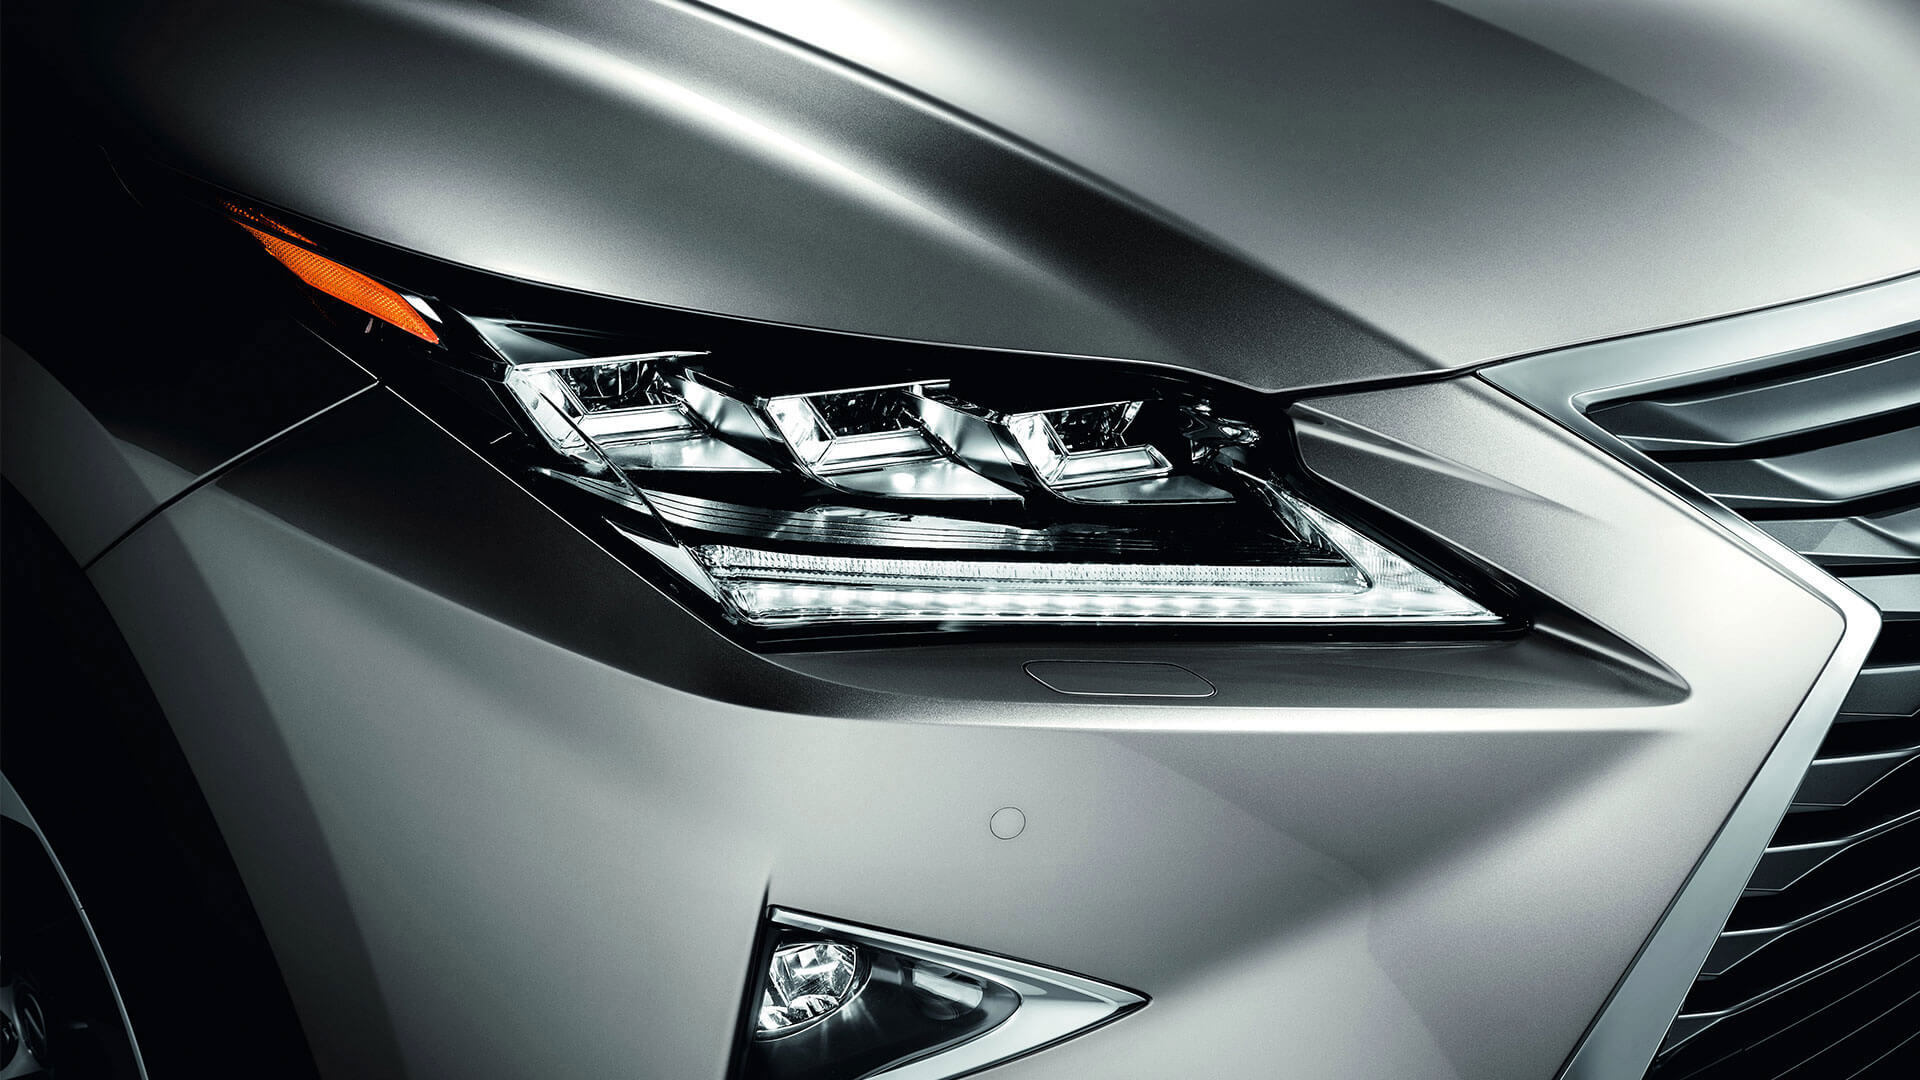 2017 lexus rx 450h features triple led headlight